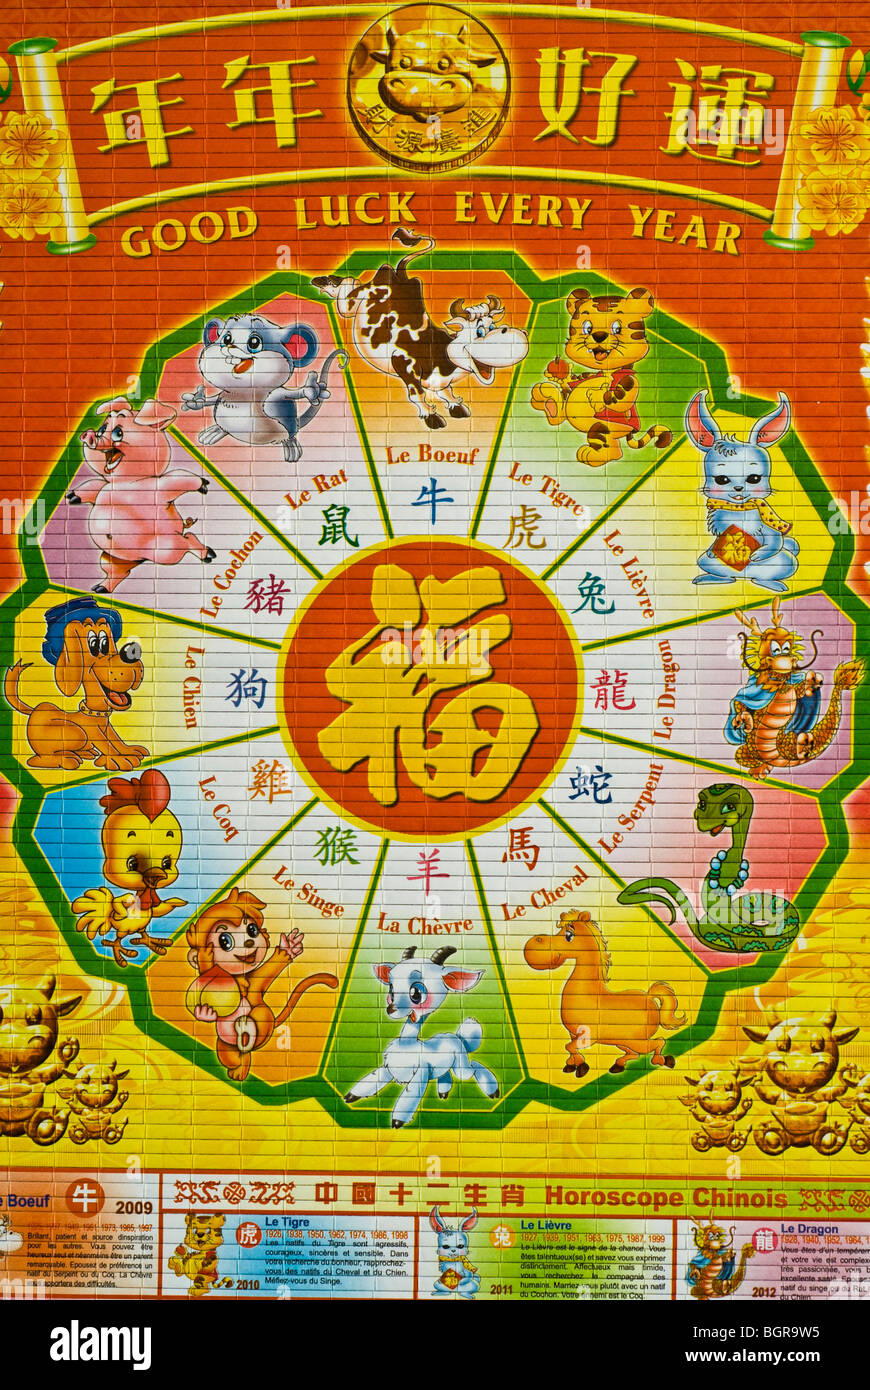 Chinese contemporary art chinese astrological calendar with stock chinese contemporary art chinese astrological calendar with illustrations representing the different animal symbols of years buycottarizona Gallery